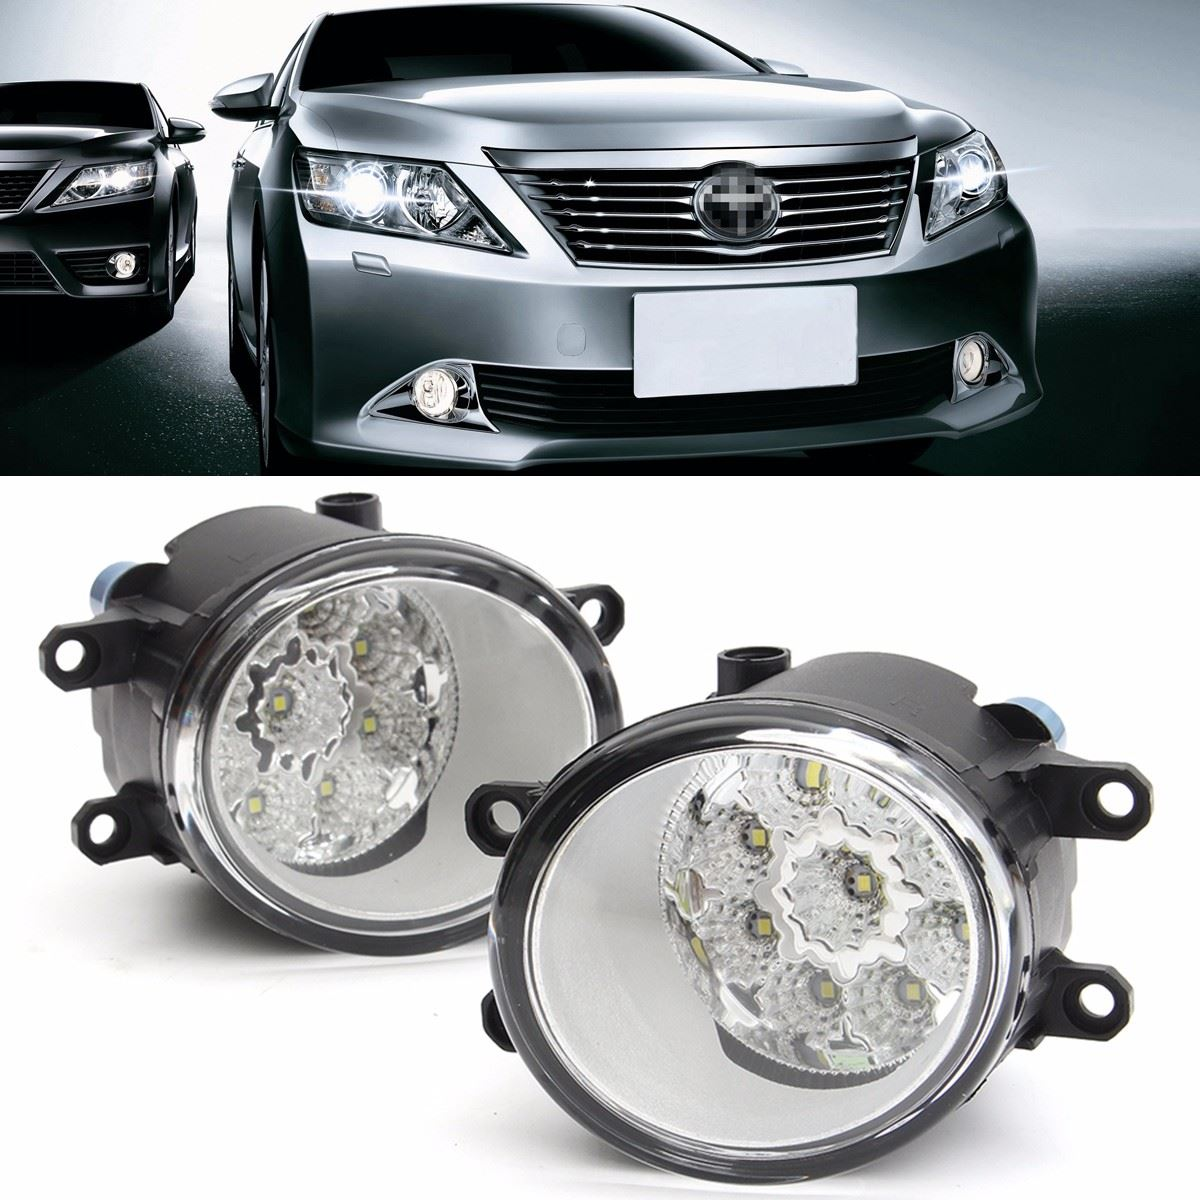 2016 Brand New Pair 9 LED Front Driving Fog Light Lamp For Toyota/Corolla/Camry/Yaris/Vios/RAV4<br><br>Aliexpress